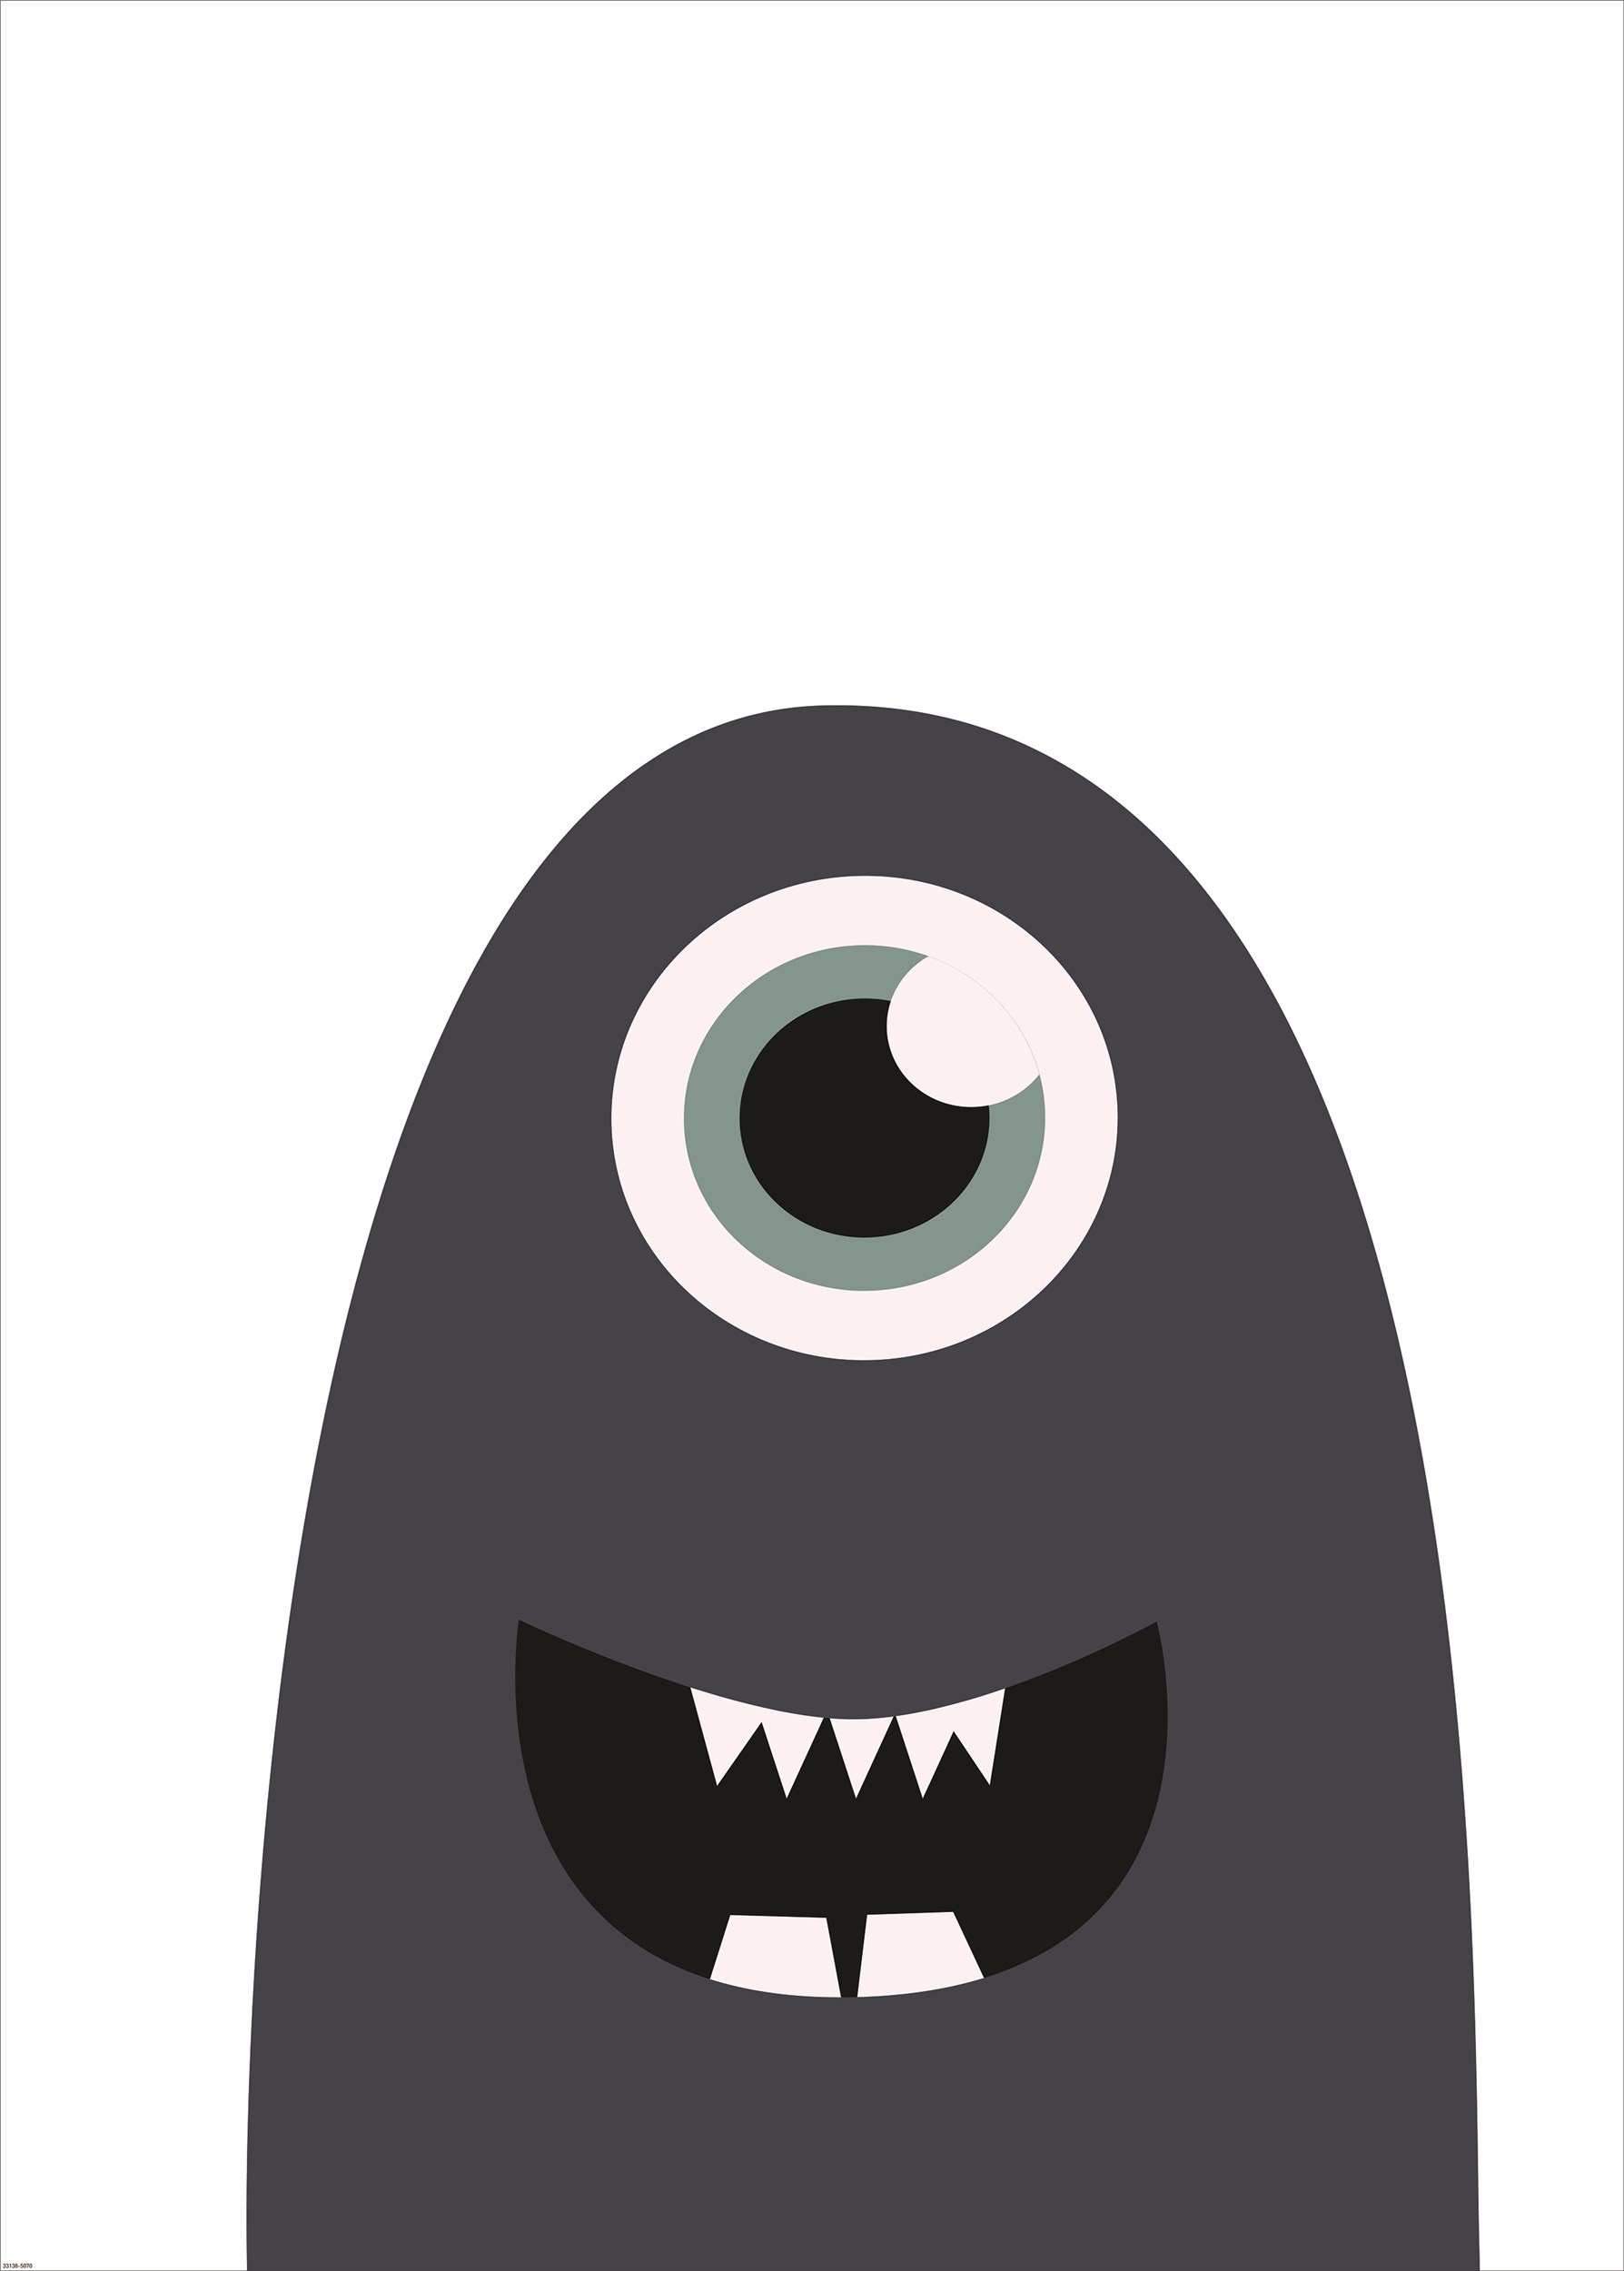 ARTPRINT 55 affisch utan ram 50 x 70 cm - Moony monster